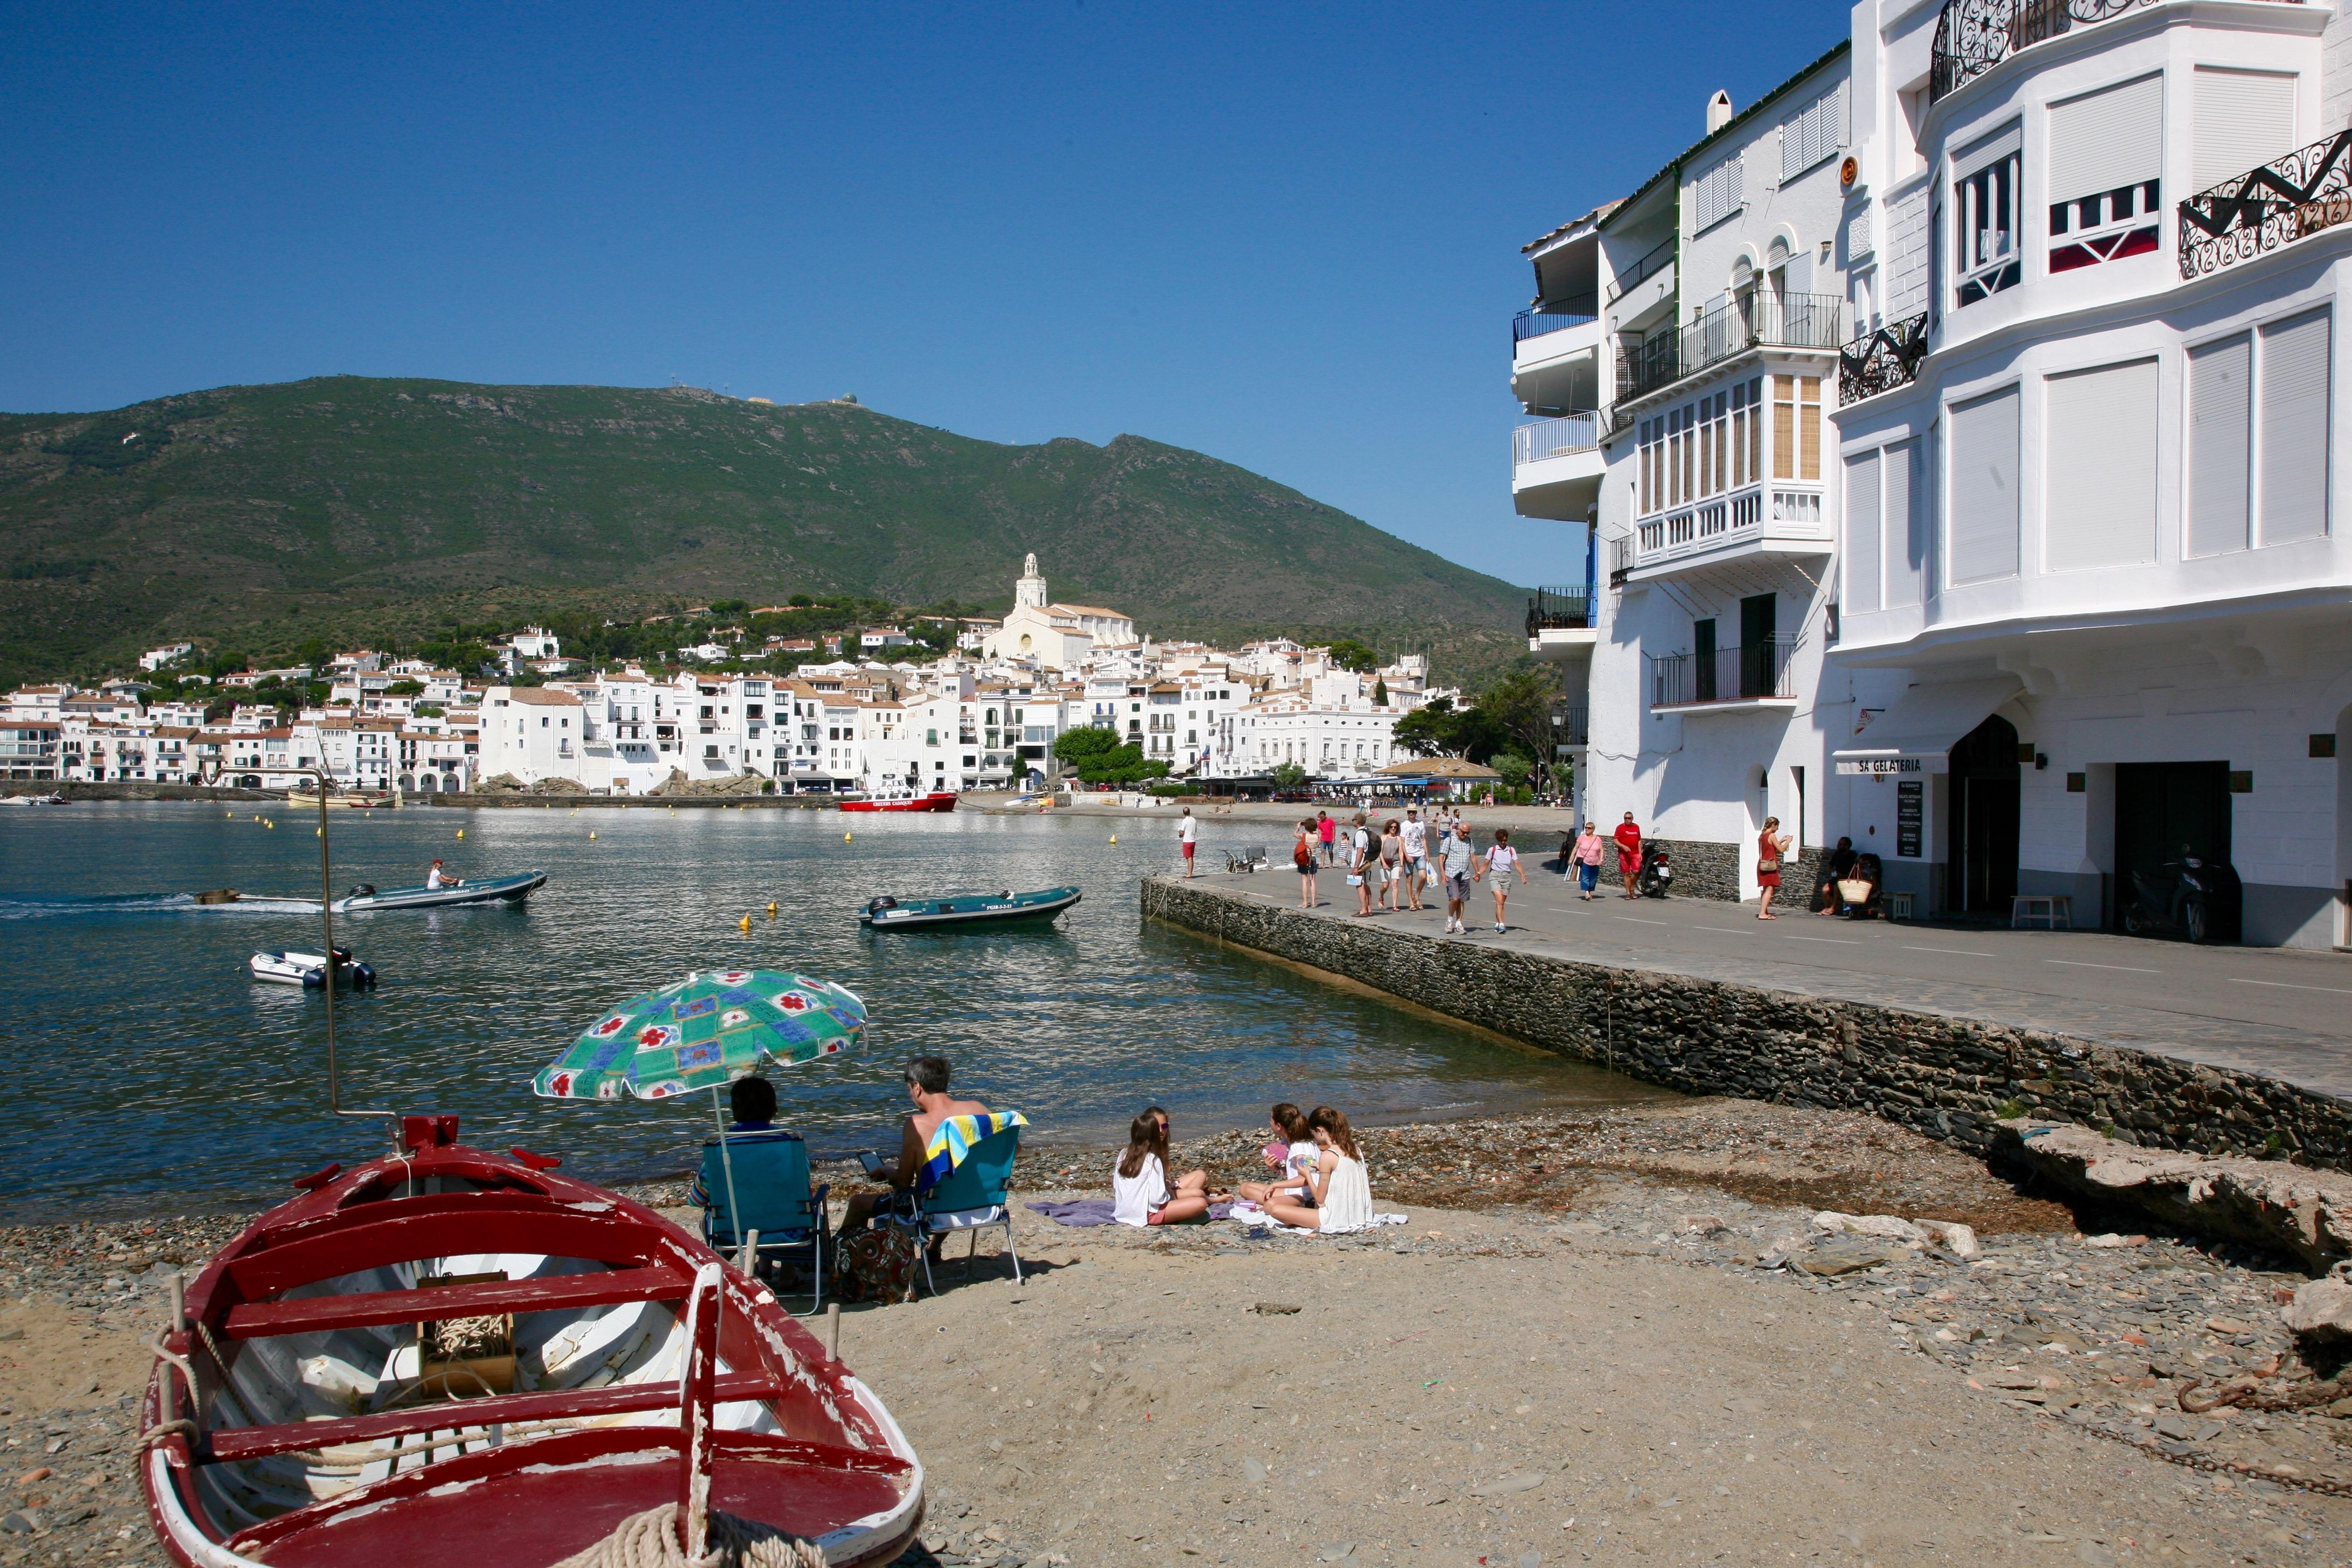 Cadaques Dali 12 Unique Costa Brava Towns To Visit On Your Holiday